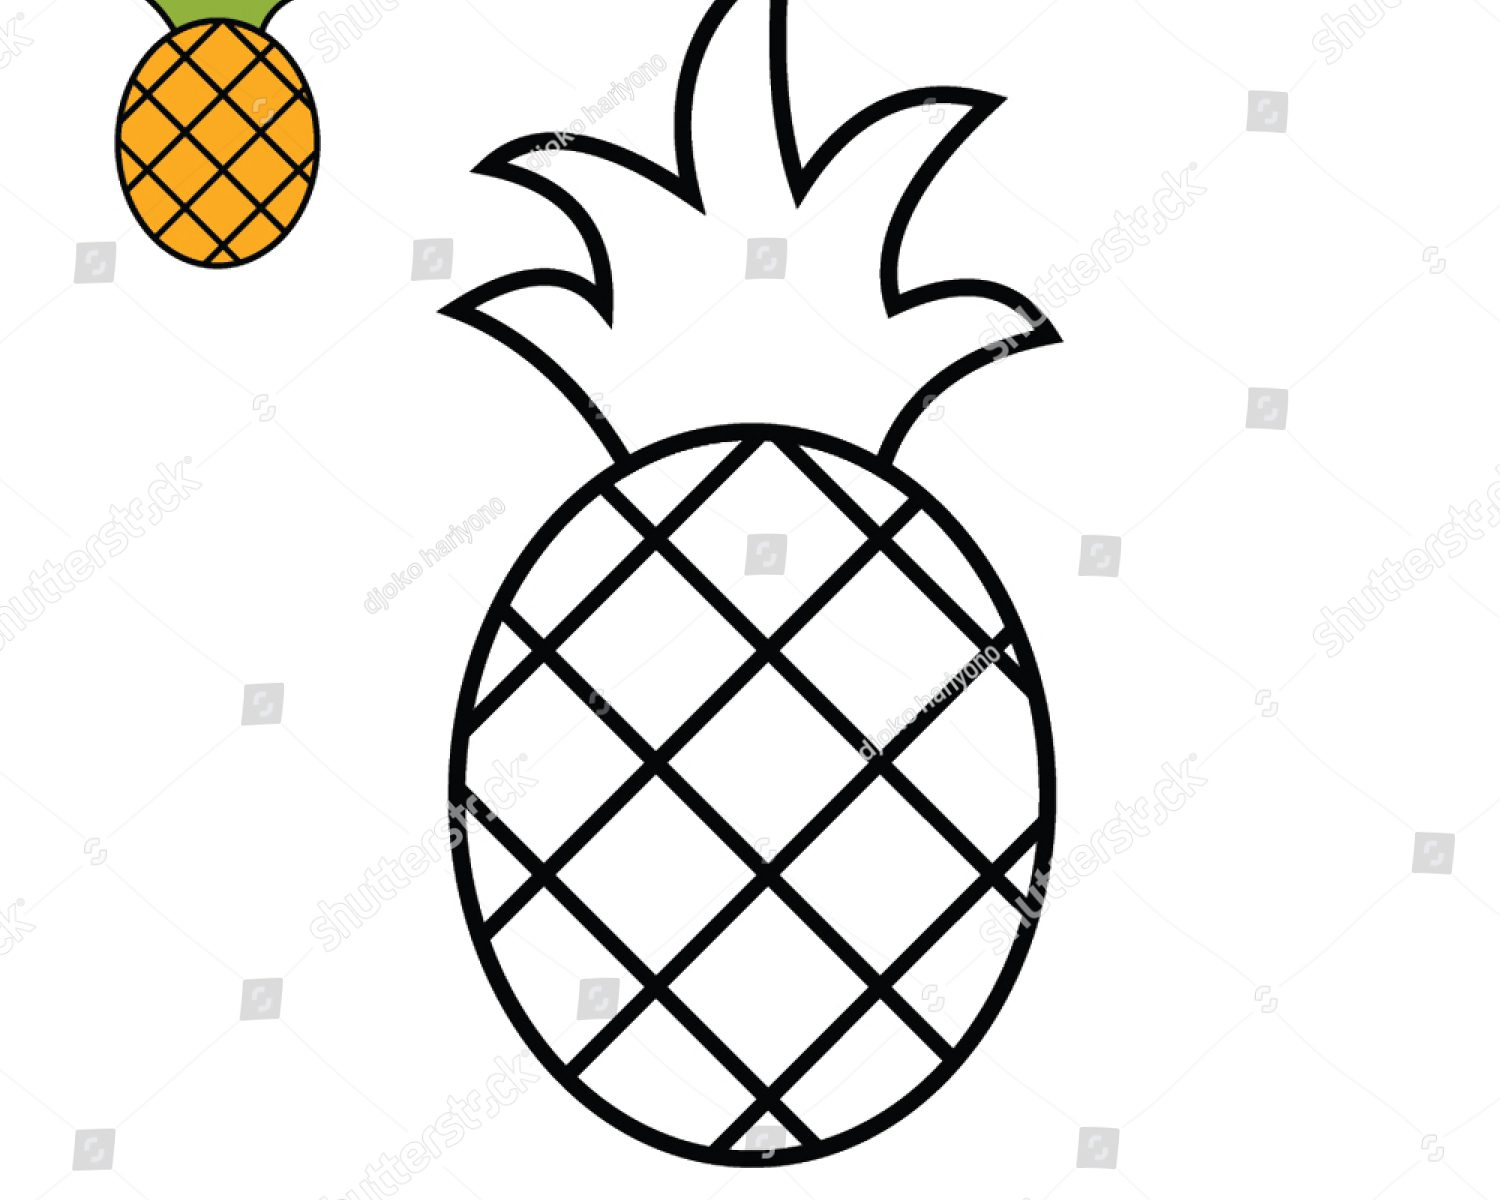 1500x1200 How To Draw Pineapple For Kids Drawing Tutorial Ripe Stock Vector